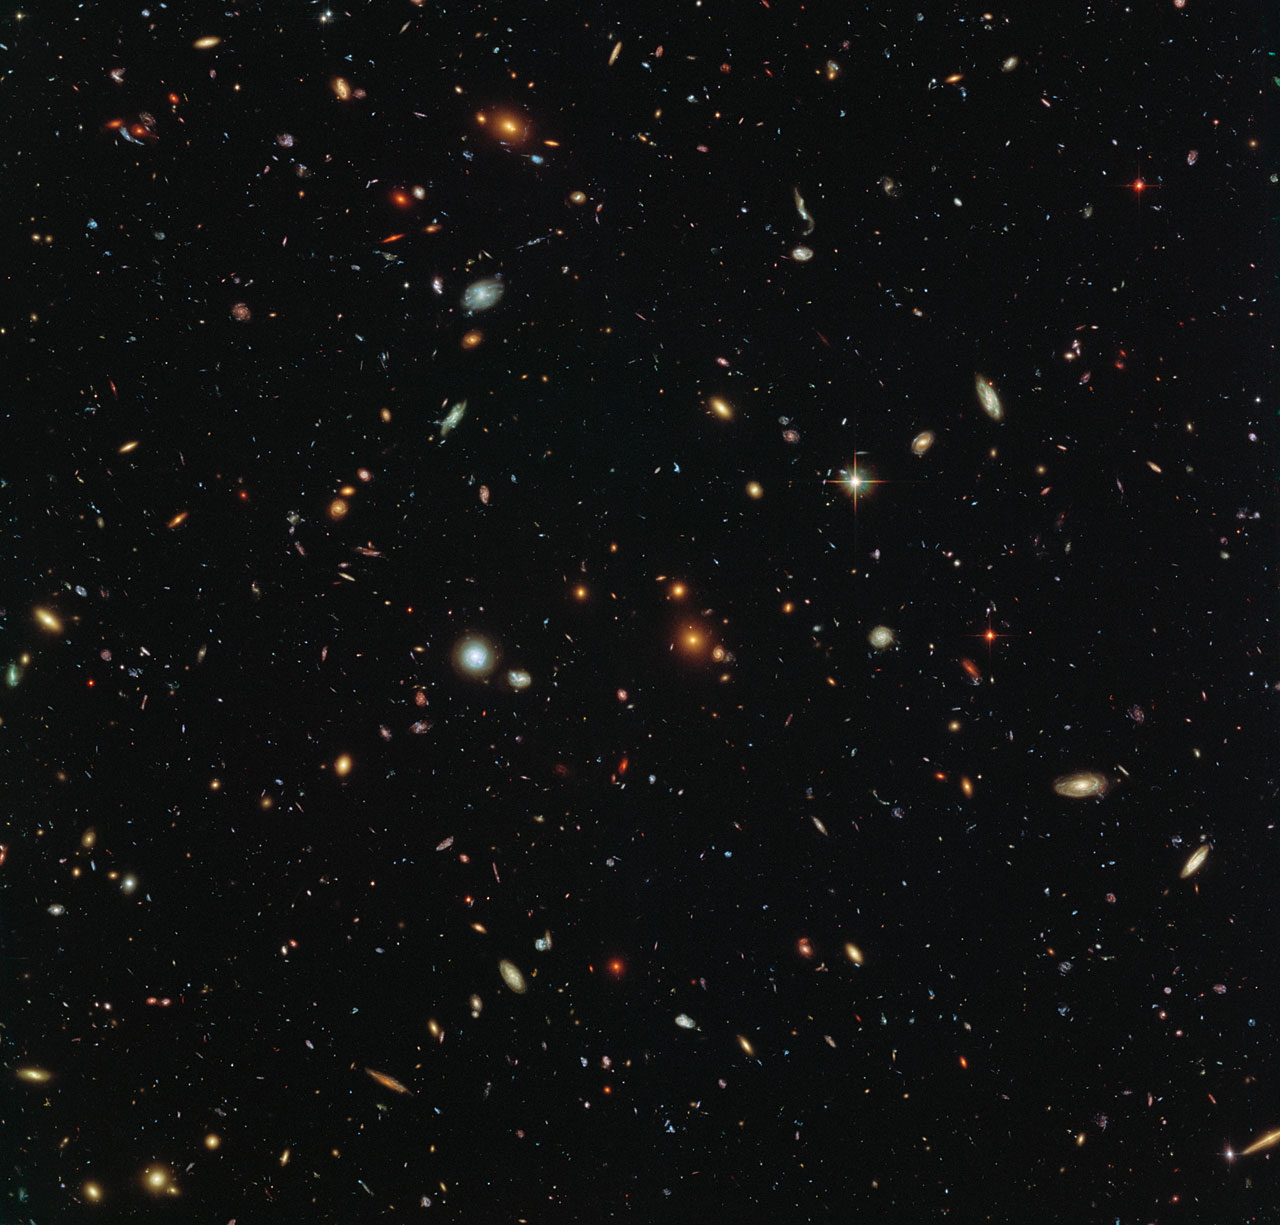 hubble space com - photo #19